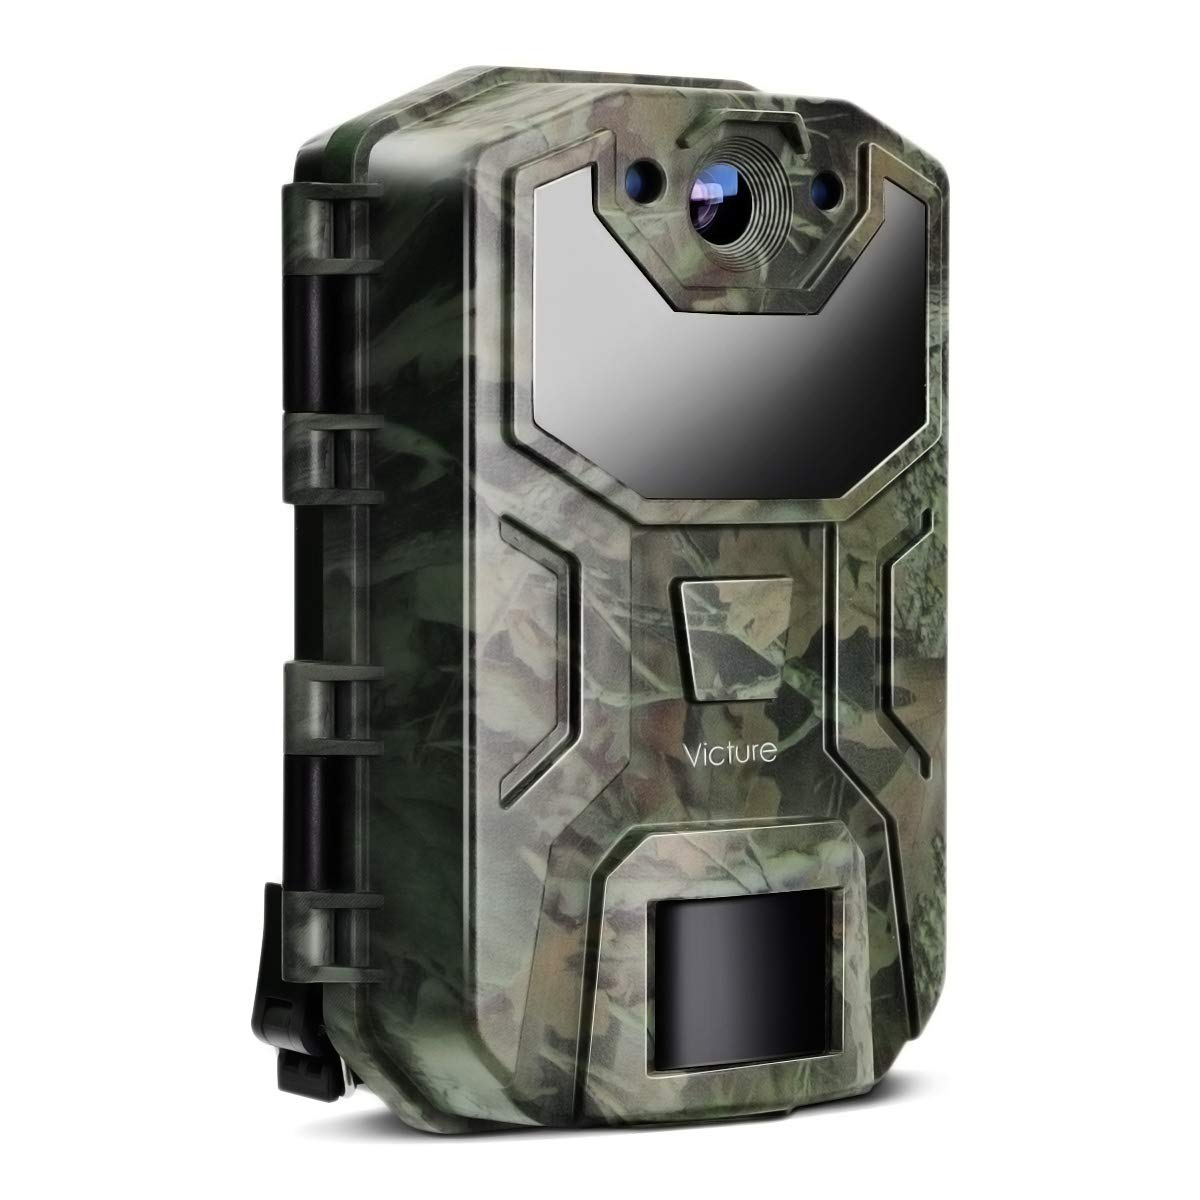 Victure Trail Game Camera 16MP 1080HD Night Vision Motion Activated with Upgrade Waterproof Design 38Pcs No Glow IR LEDs for Hunting and Wildlife Watching by Victure